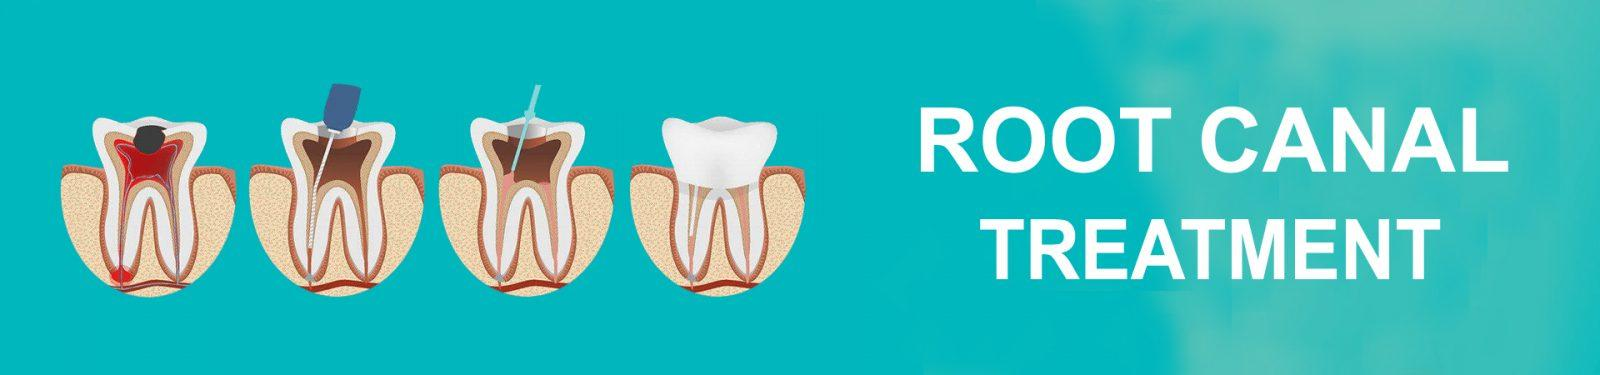 ROOT CANAL copy